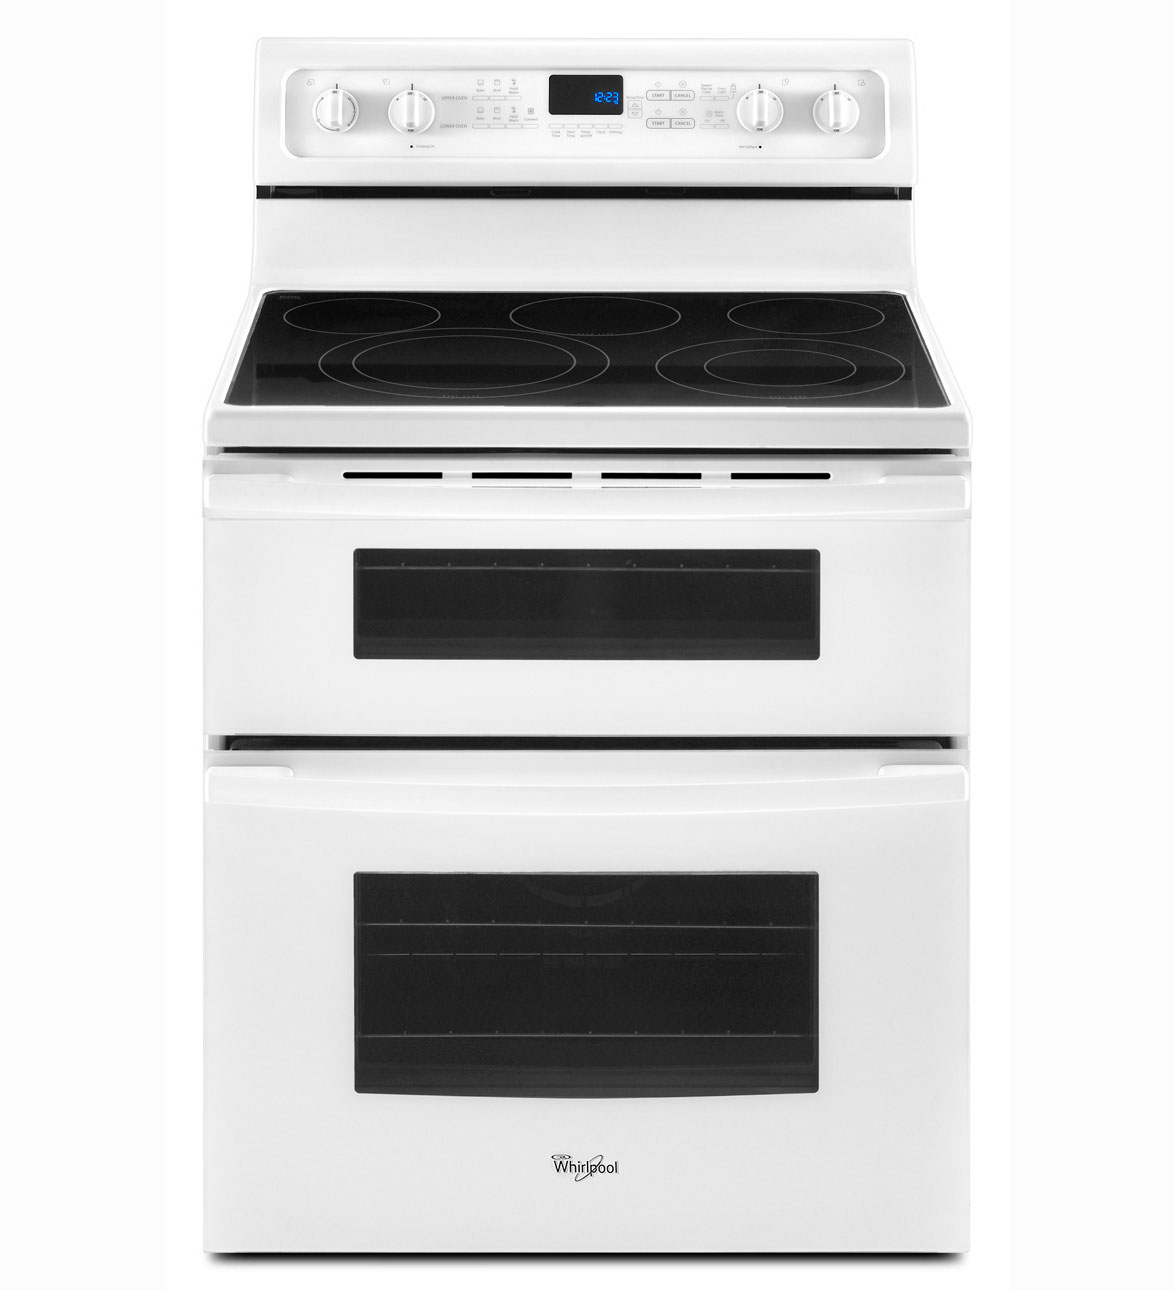 Gge390lxq Whirlpool 30 Electric Gl Top Double Oven Range White